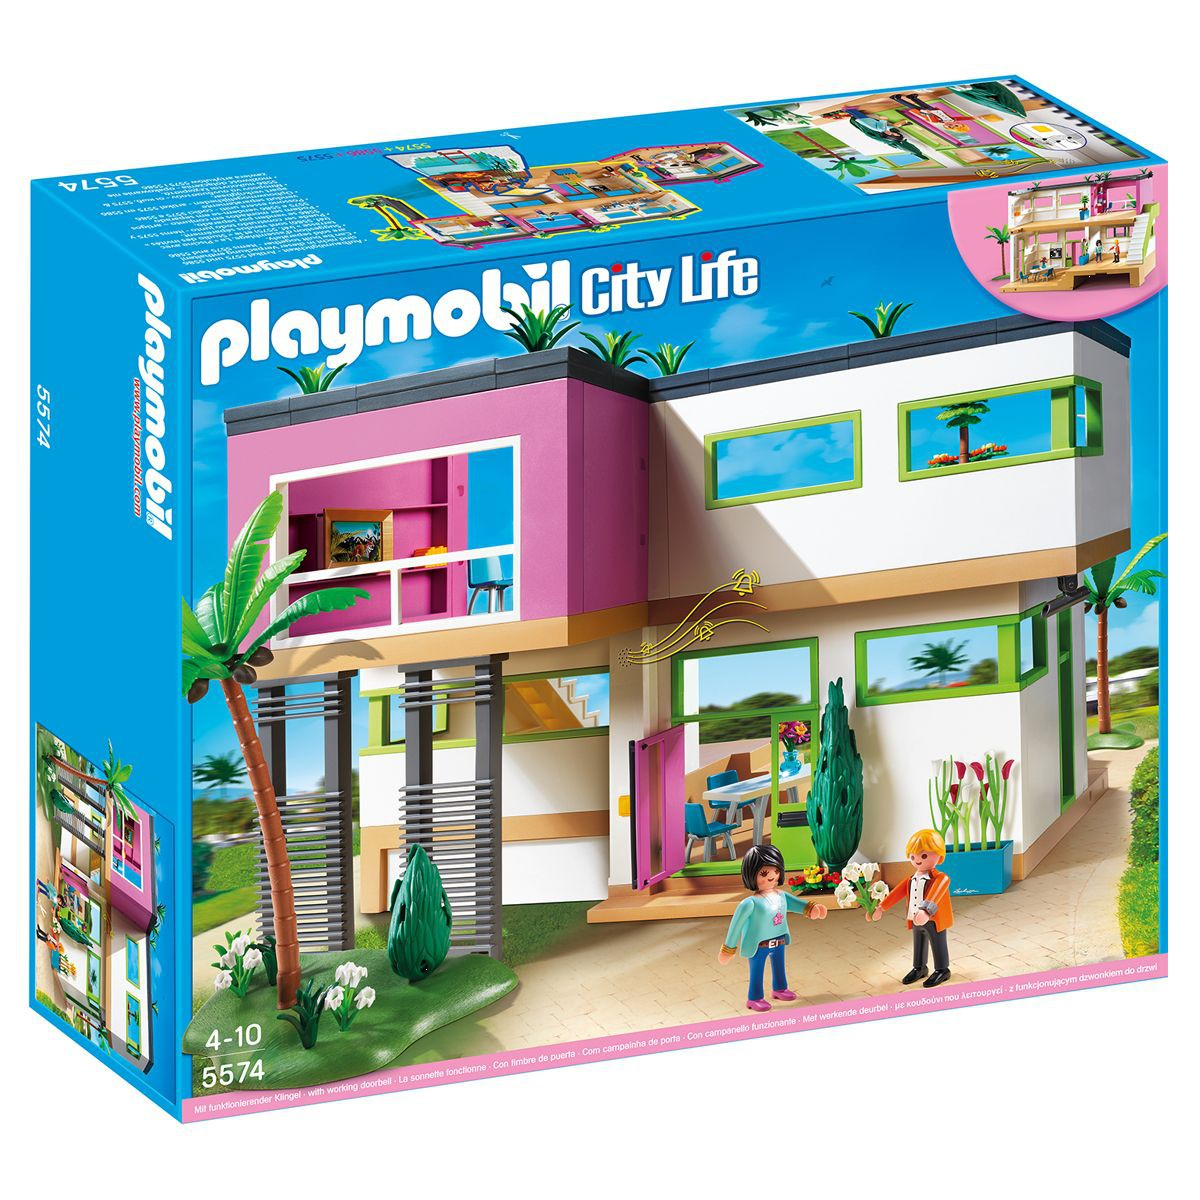 maison moderne playmobil 5574 dimensions